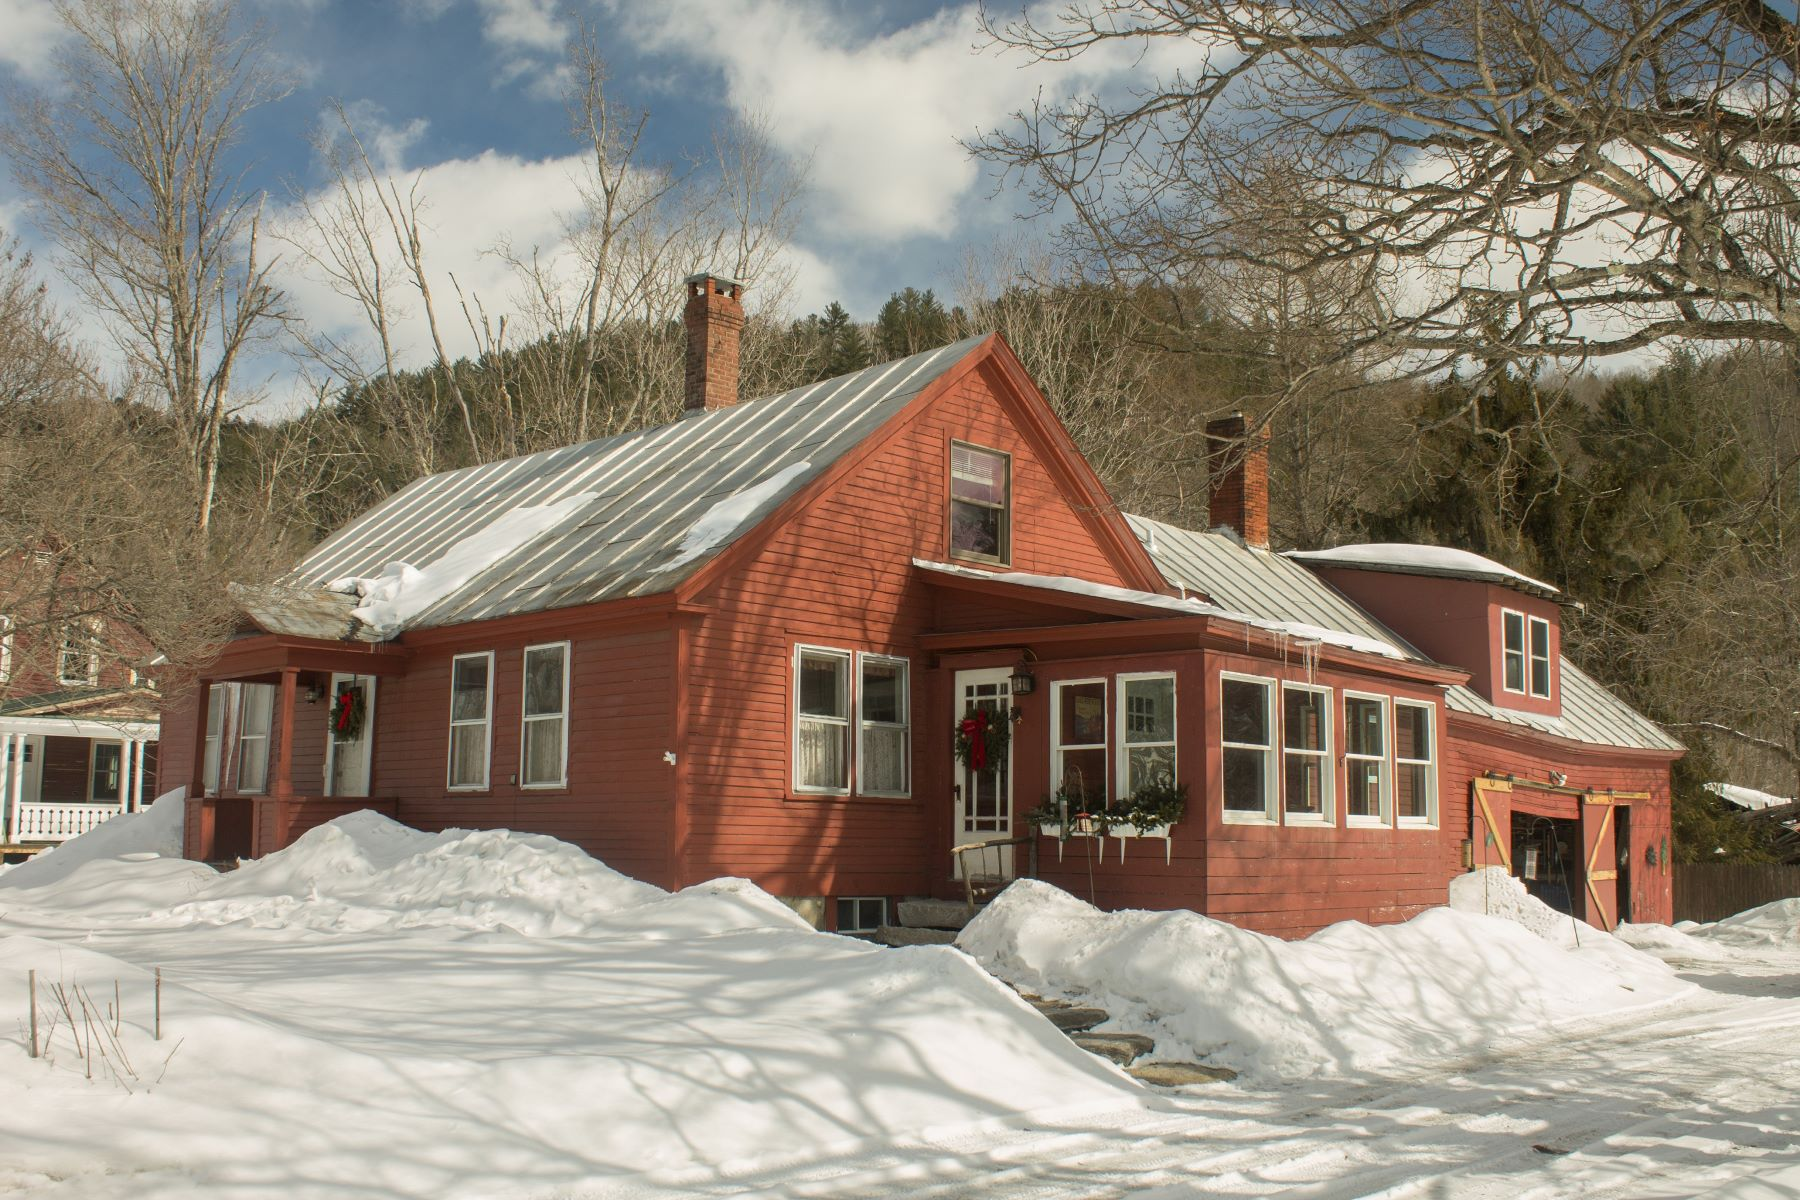 Single Family Home for Sale at Three Bedroom Antique Cape in Chelsea 340 Vt Route 110 Chelsea, Vermont 05038 United States